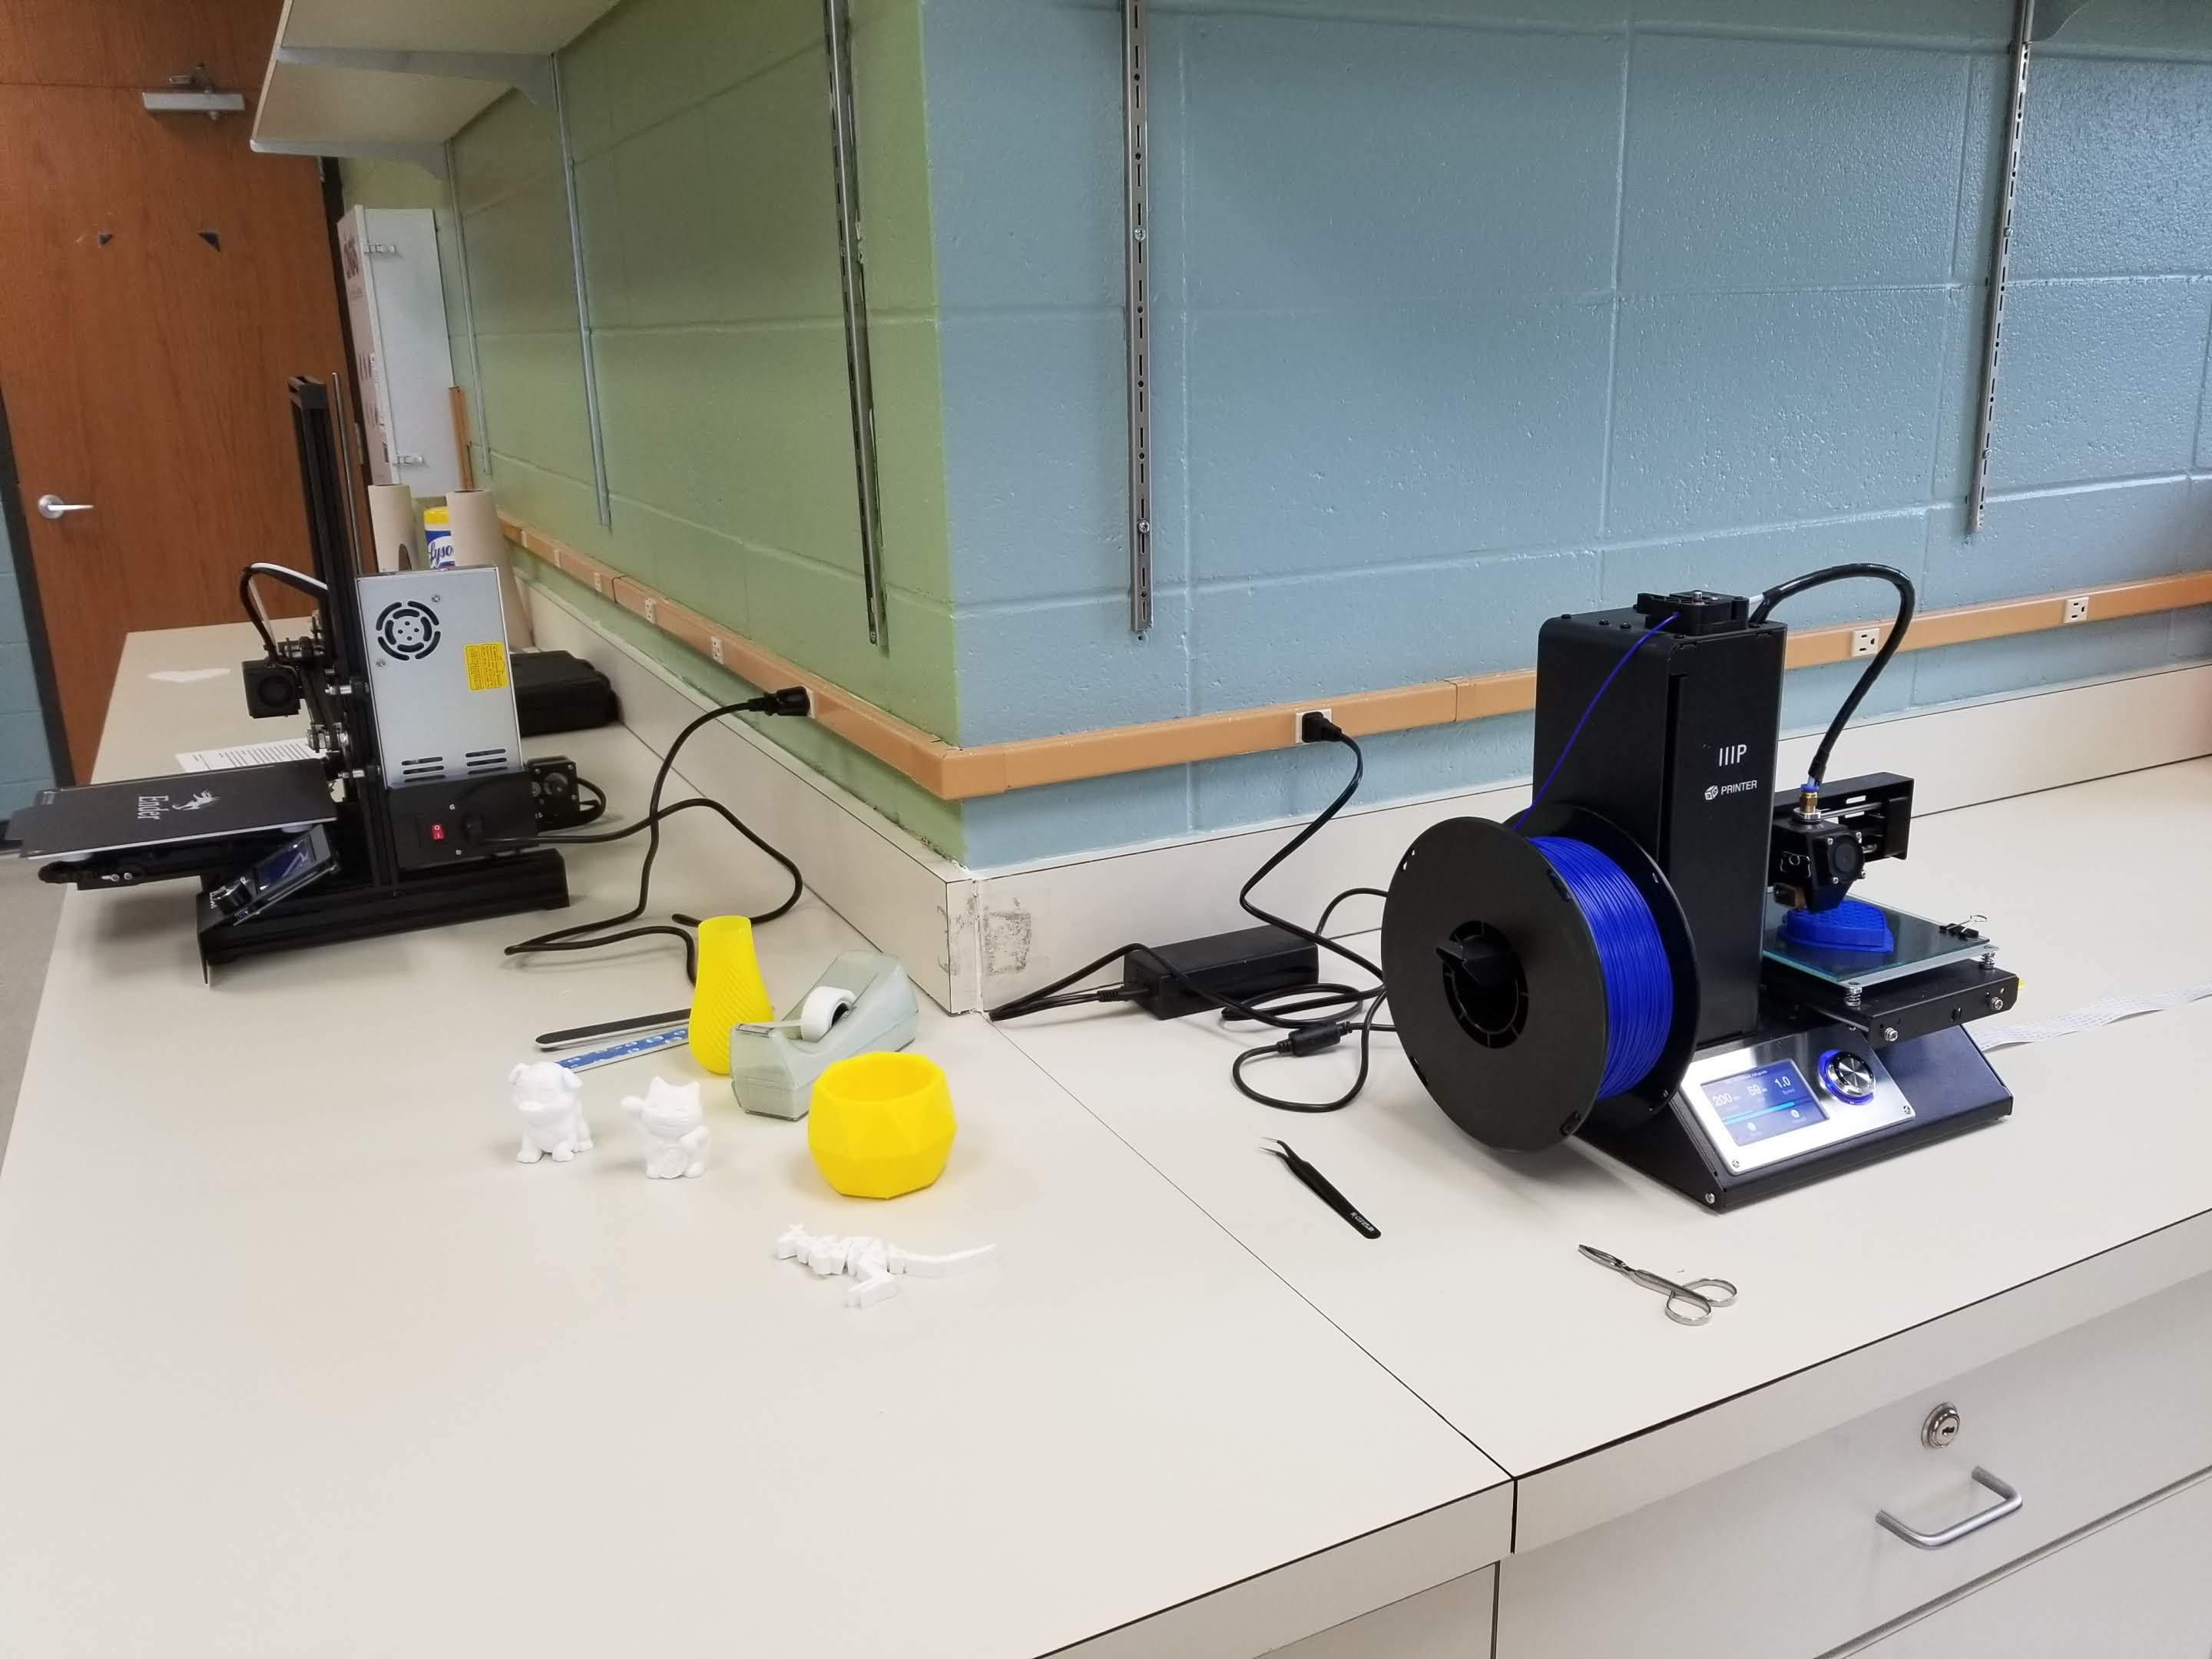 3D printers in the ECTC Library Makerspace